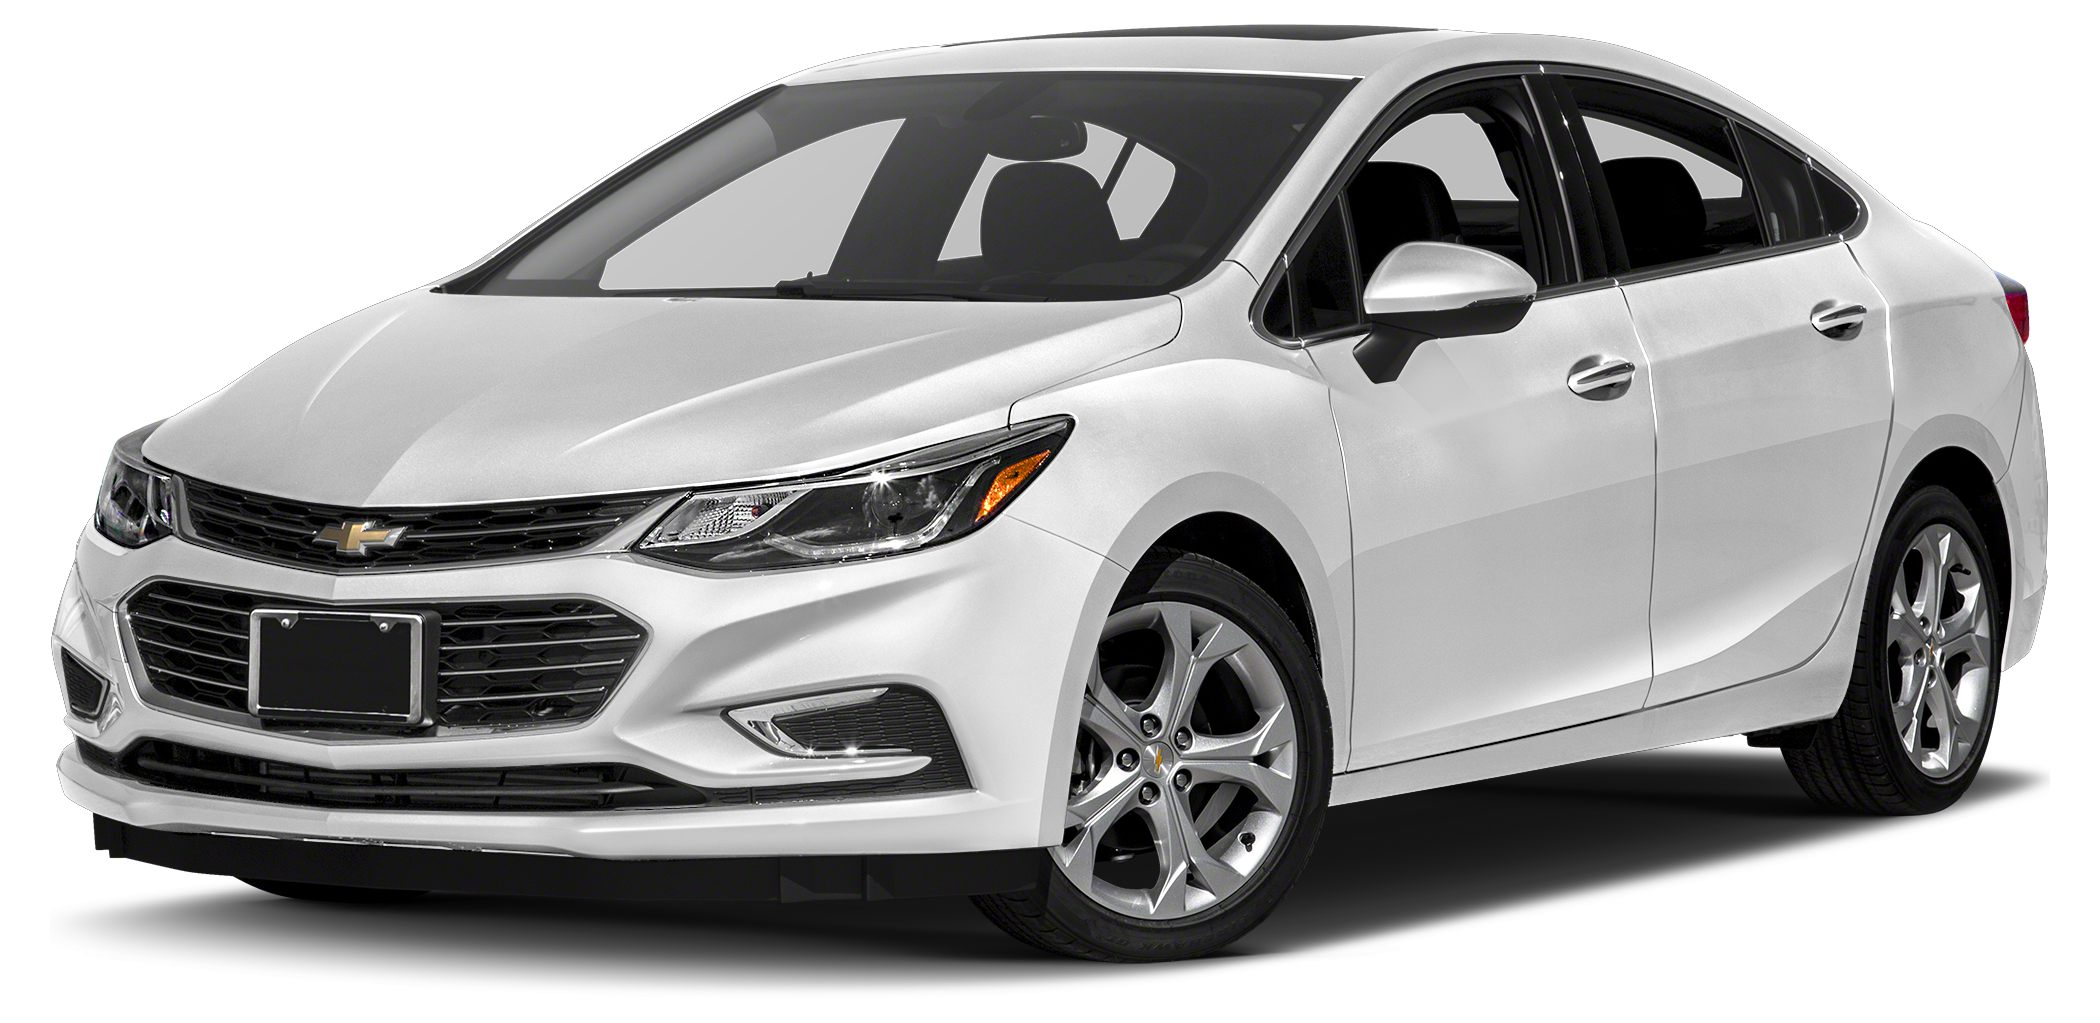 2016 Chevrolet Cruze LS Youve never felt safer than when you cruise with anti-lock brakes a back